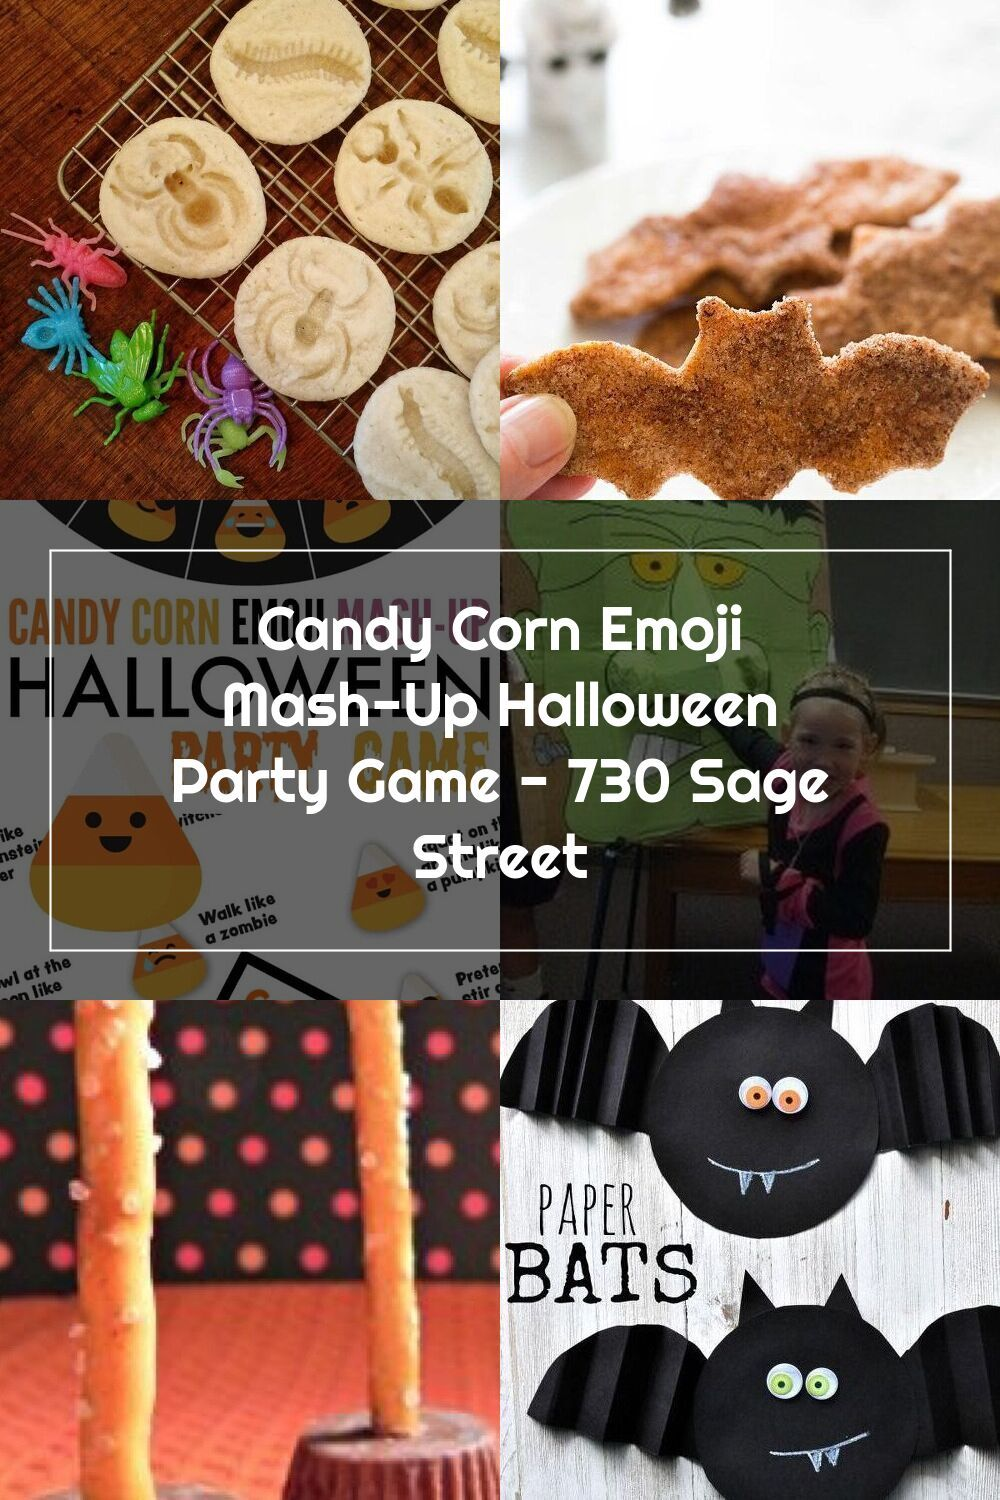 Candy Corn Emoji MashUp Halloween Party Game 730 Sage